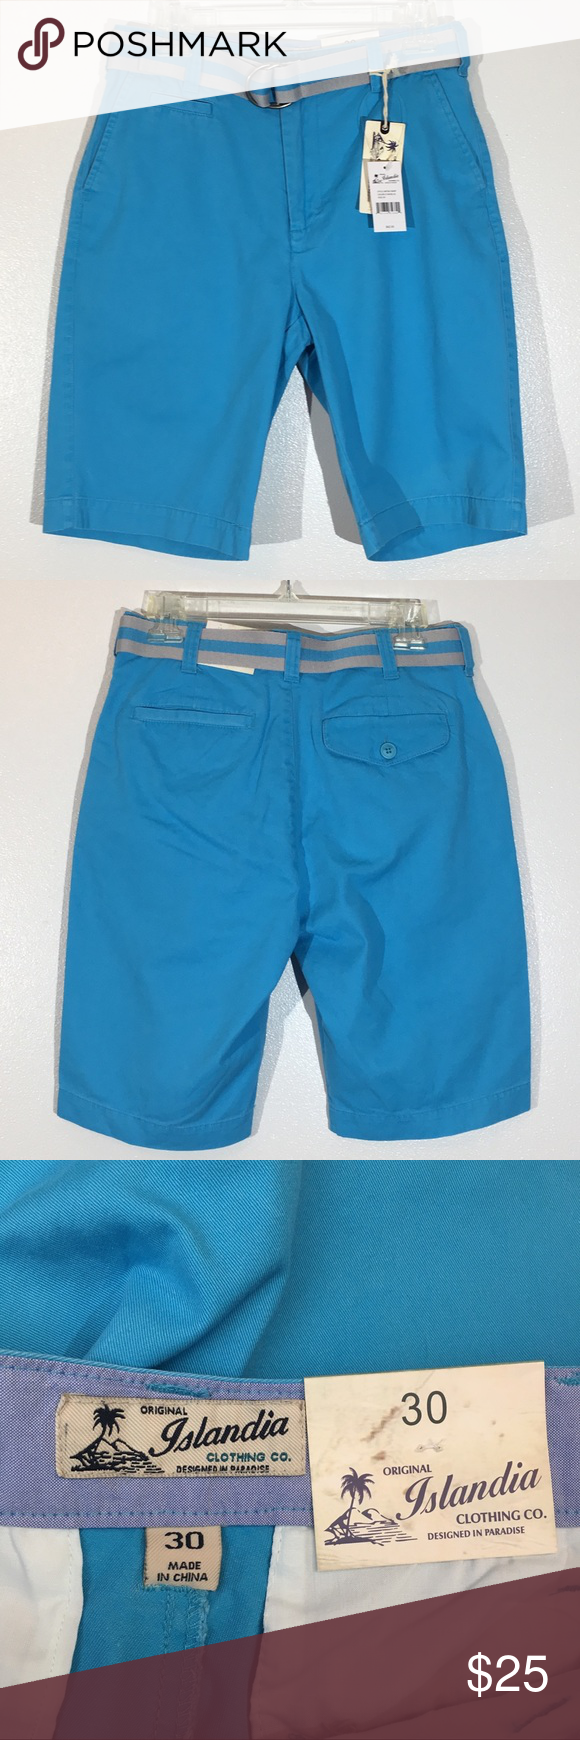 "Islandia light blue flat front shorts w/belt - 30 Brand new with tags Flat from light blue shorts with and attached adjustable/removable belt  Waist 15"" Inseam 10.5"" Out seam 21.5"" Islandia Shorts Flat Front #lightblueshorts"